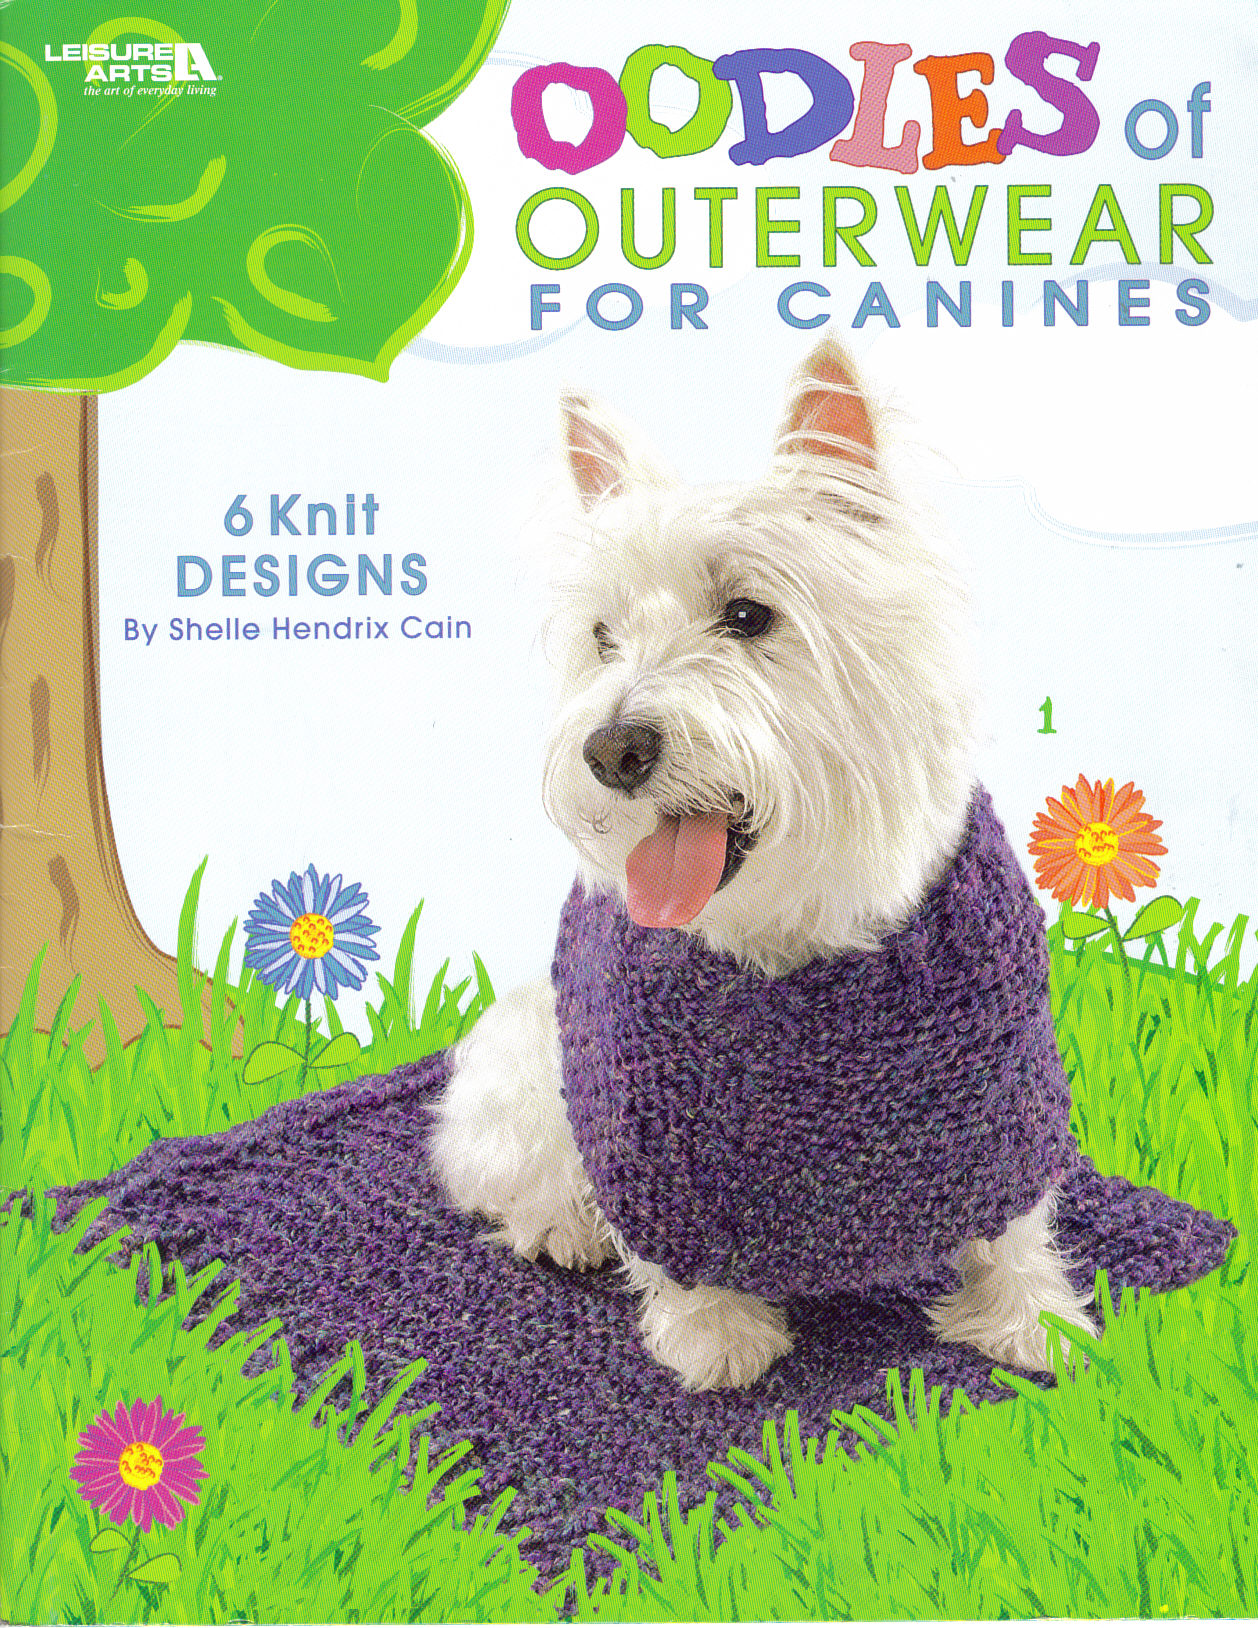 (6 knit designs included)